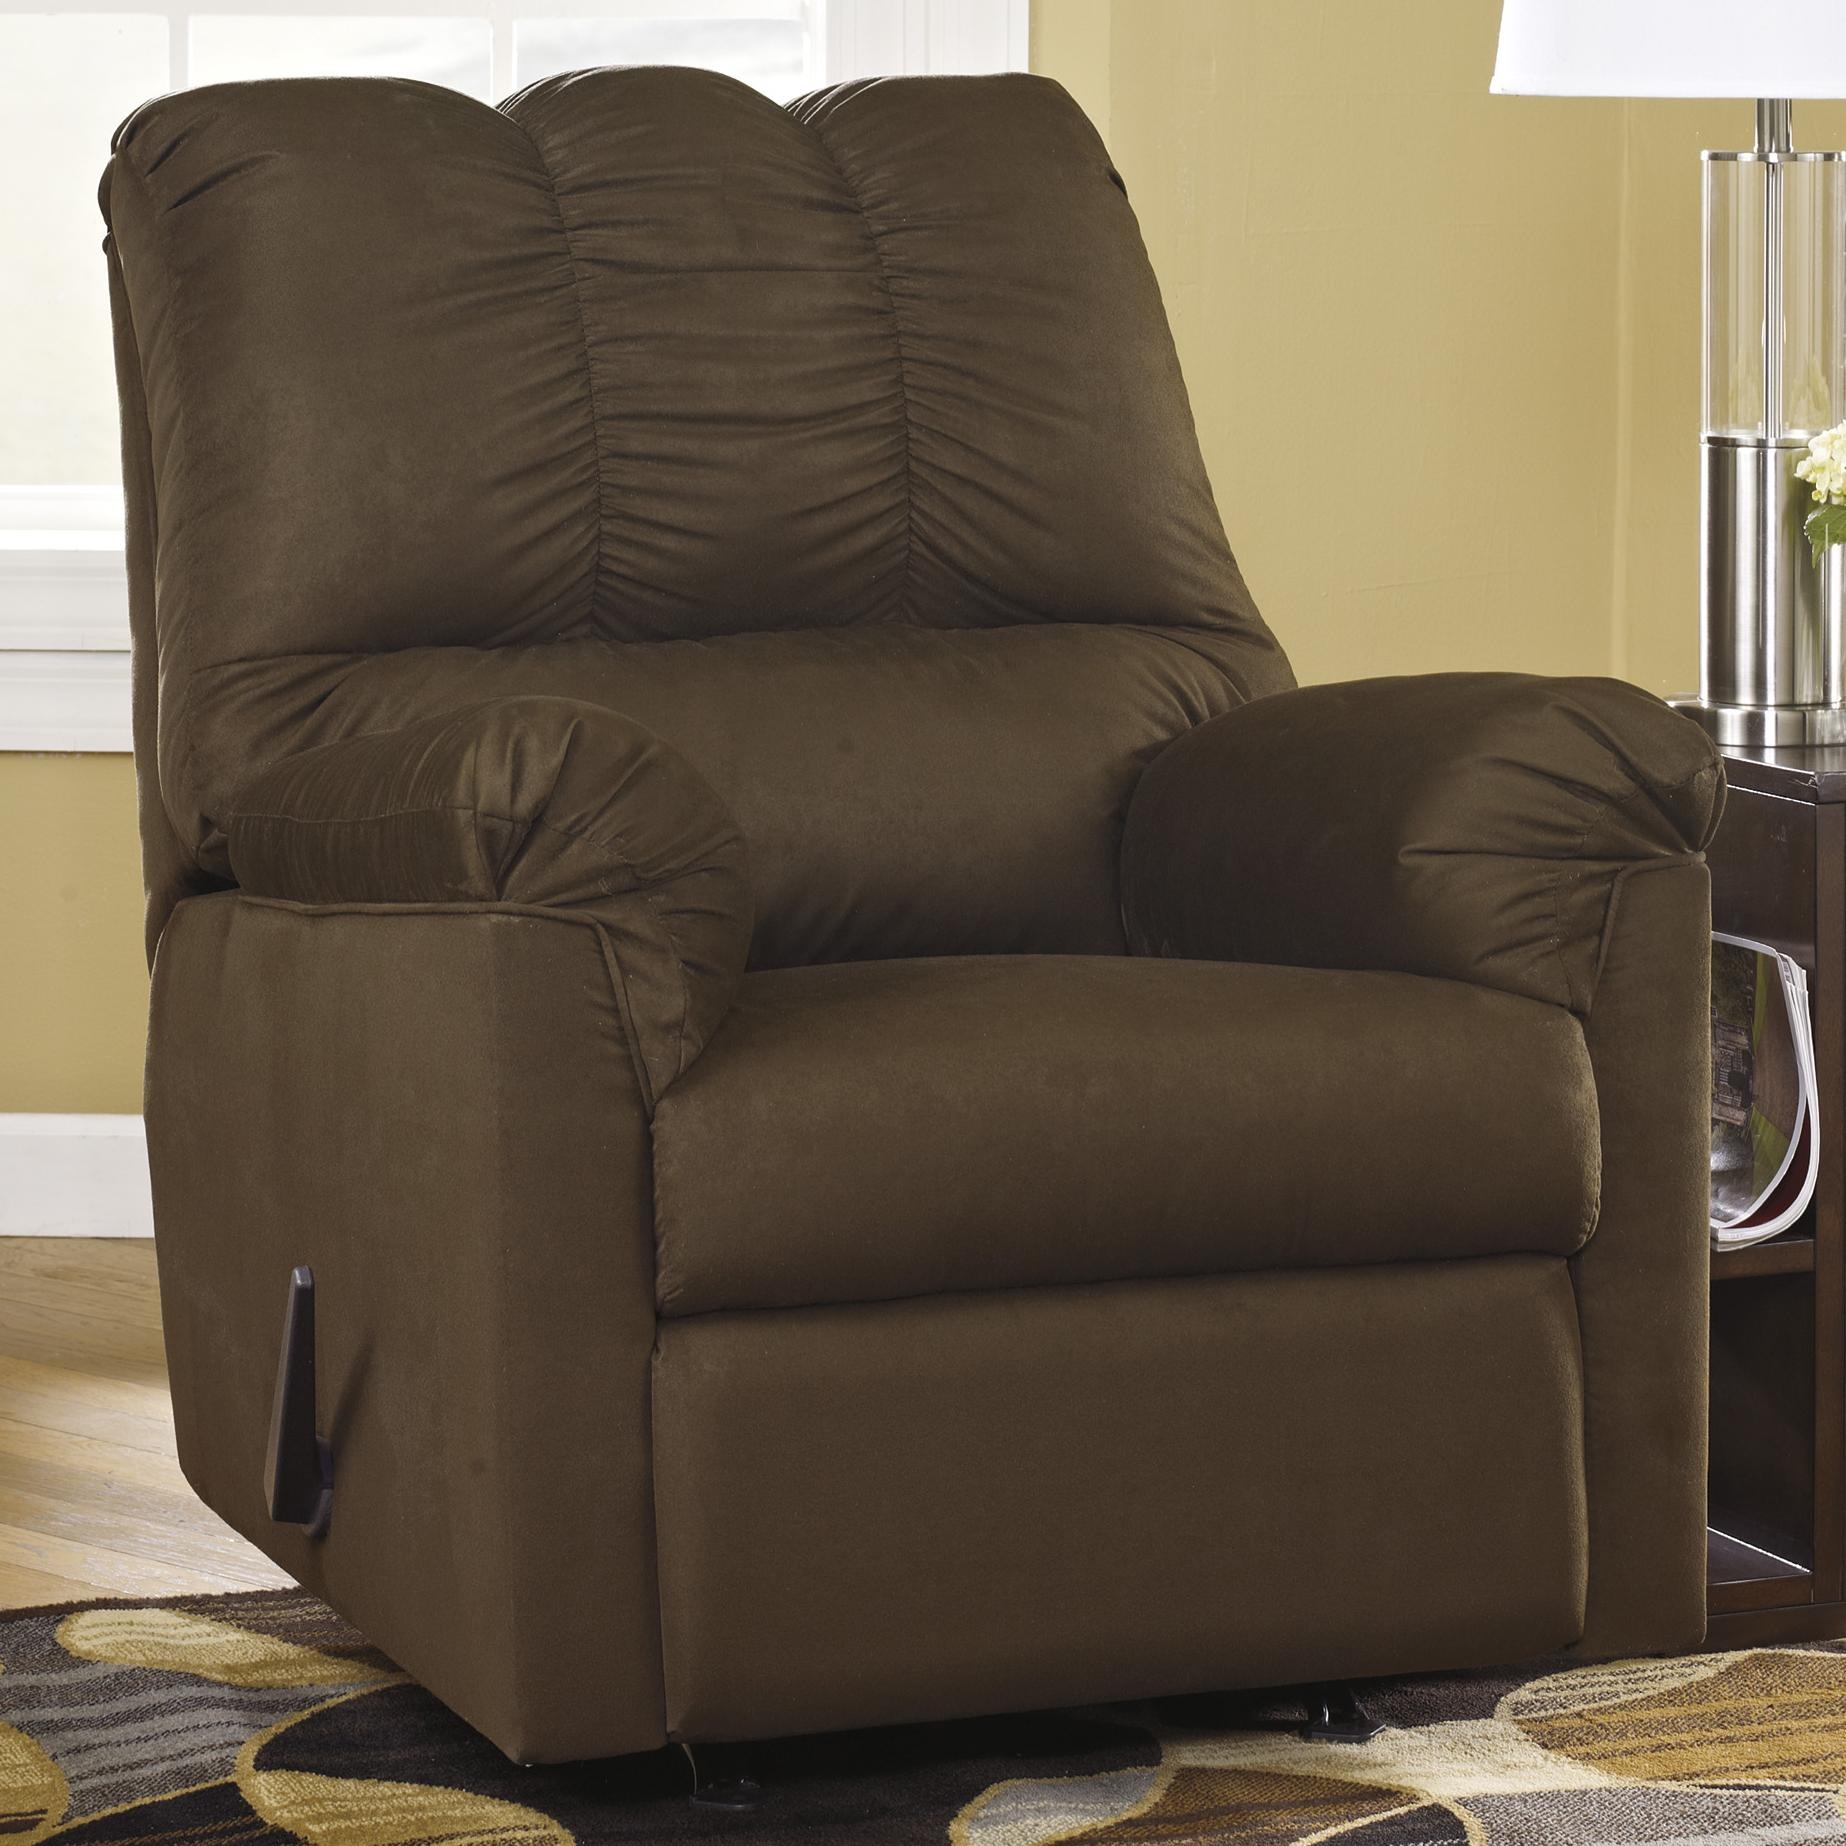 Darcy - Cafe Rocker Recliner by Ashley (Signature Design) at Johnny Janosik